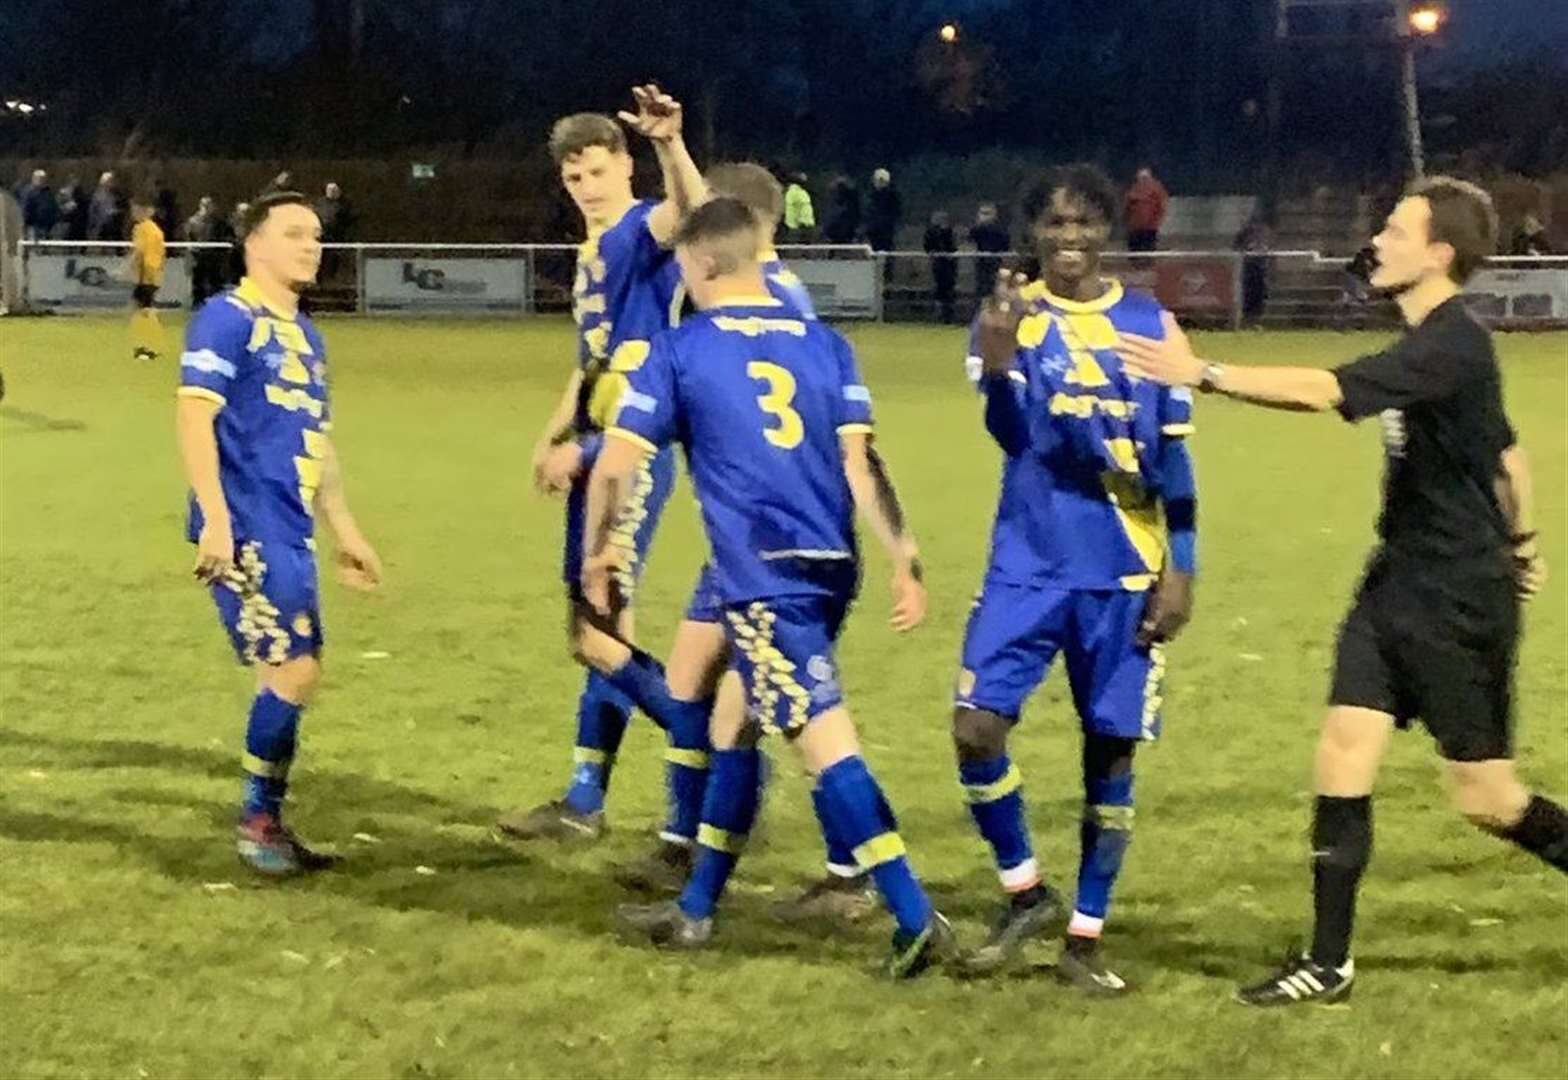 FOOTBALL: Tulips rally to away win after tough week